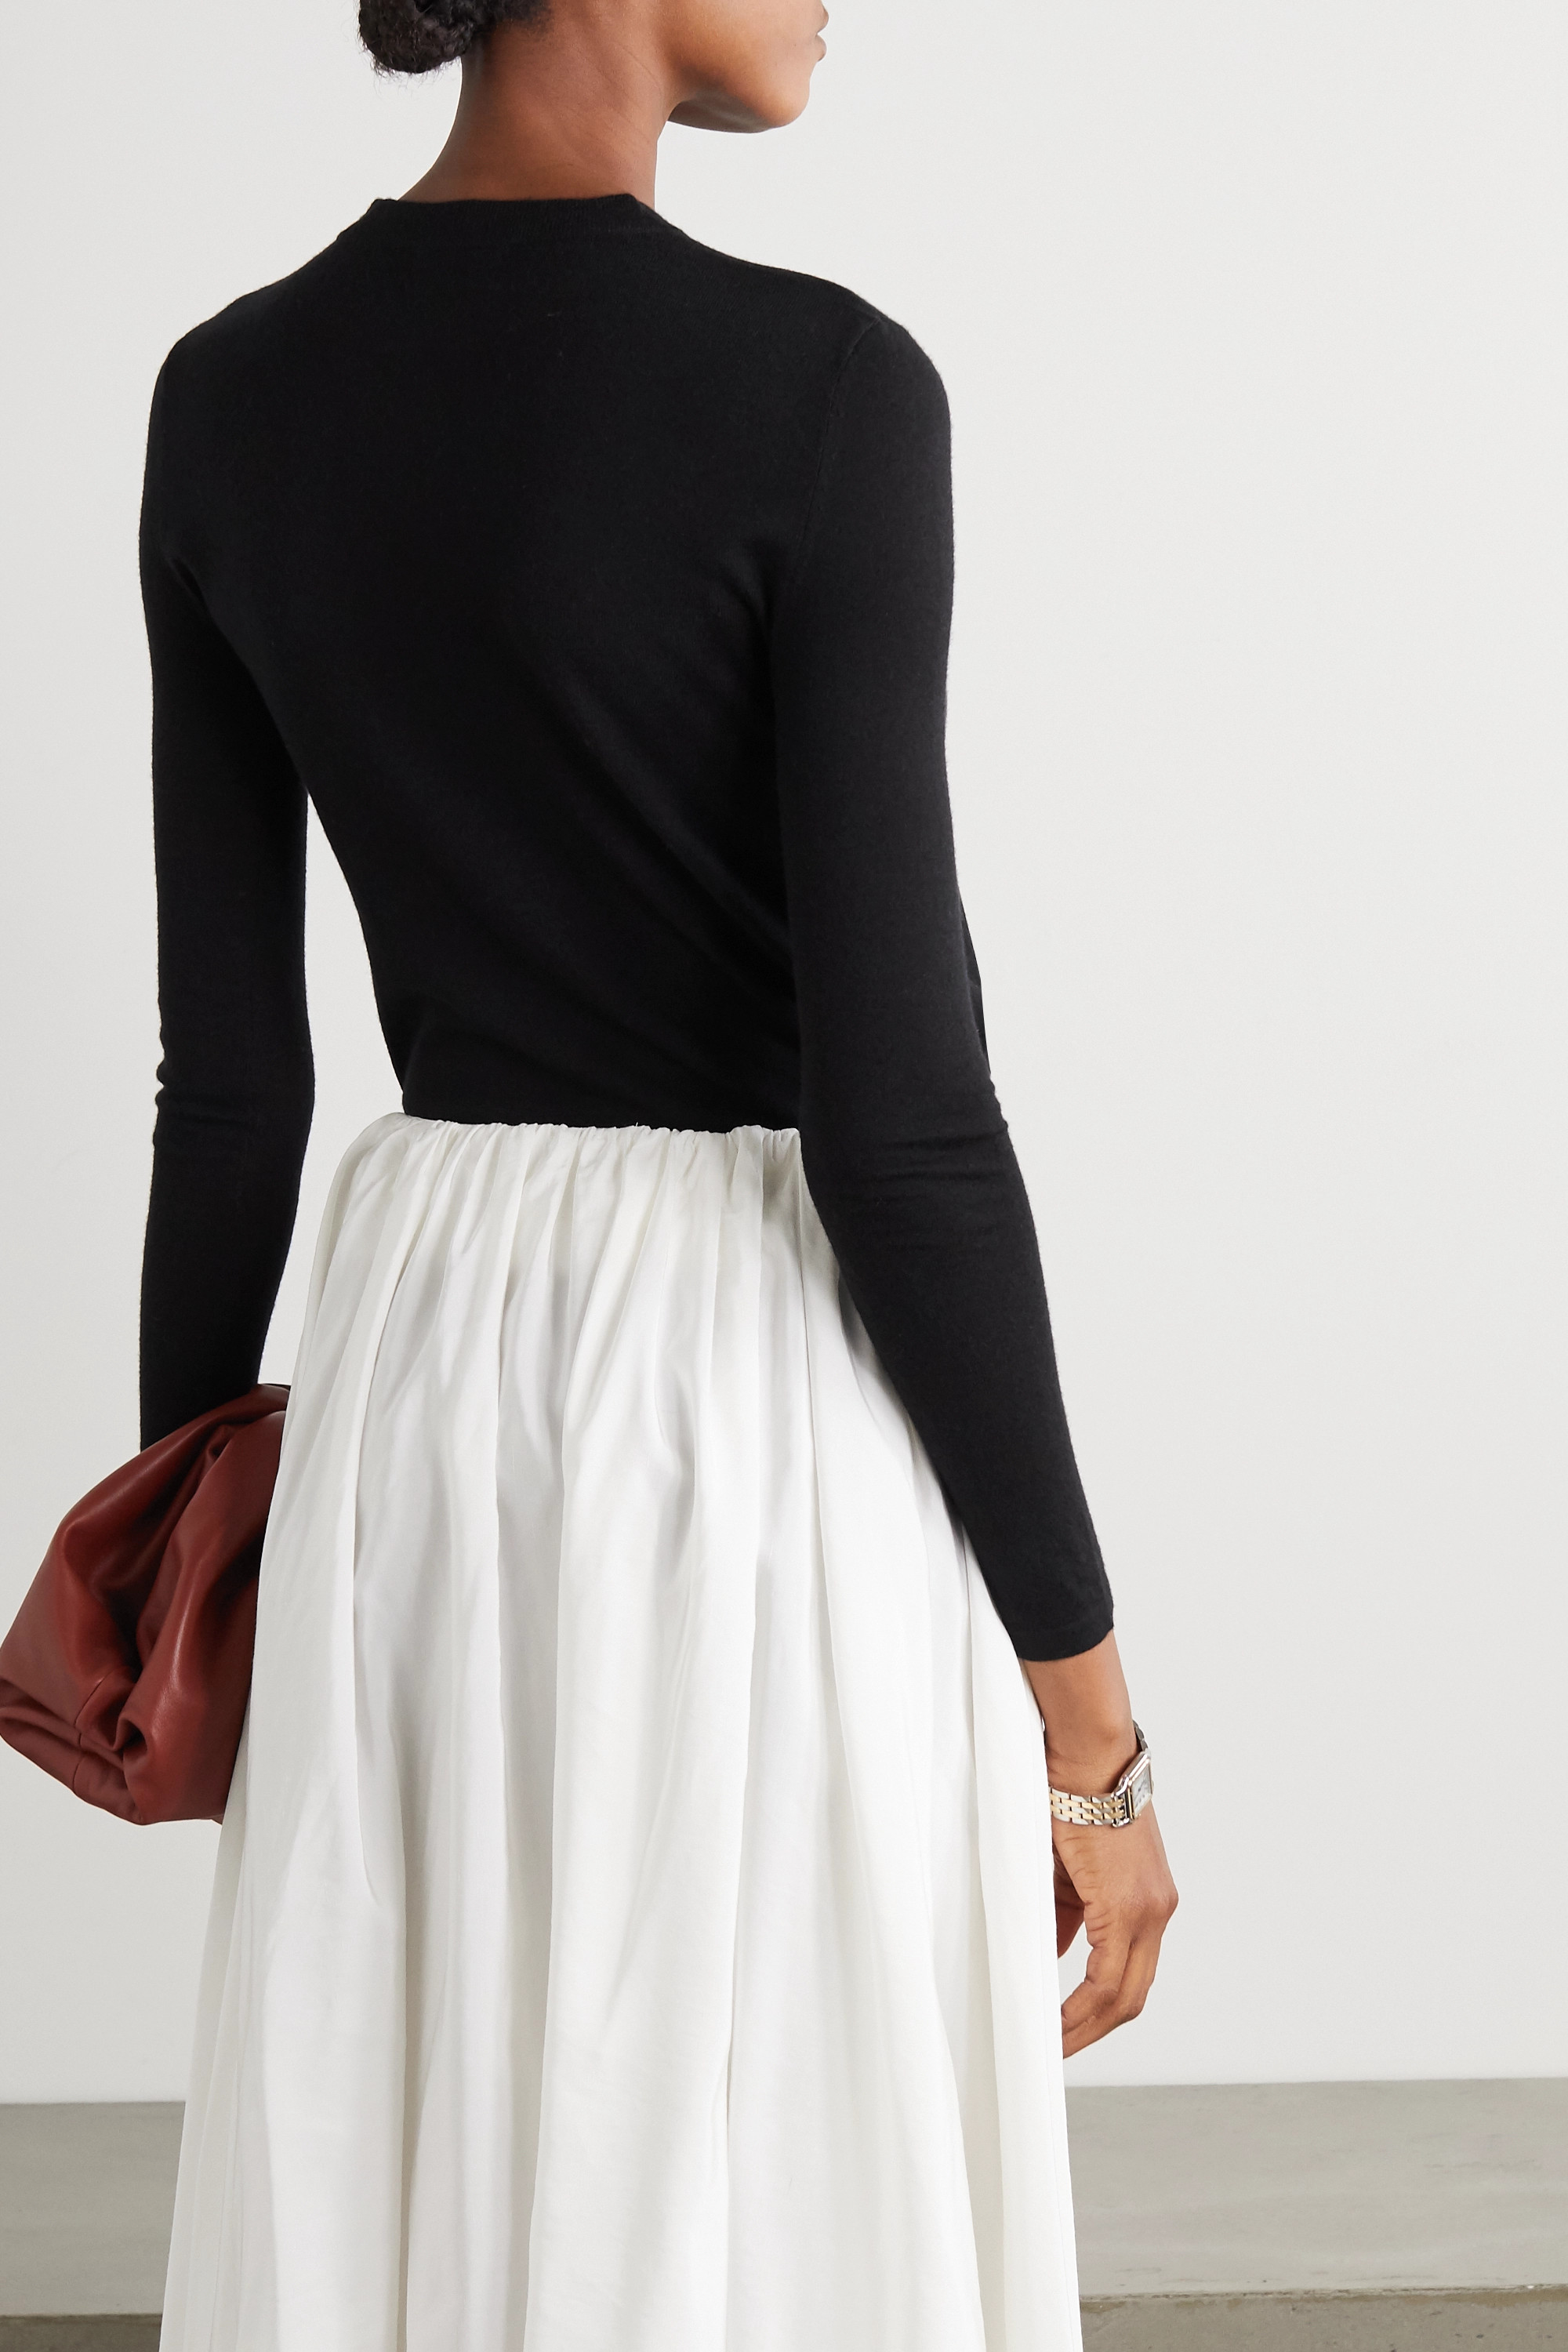 Co Cashmere top